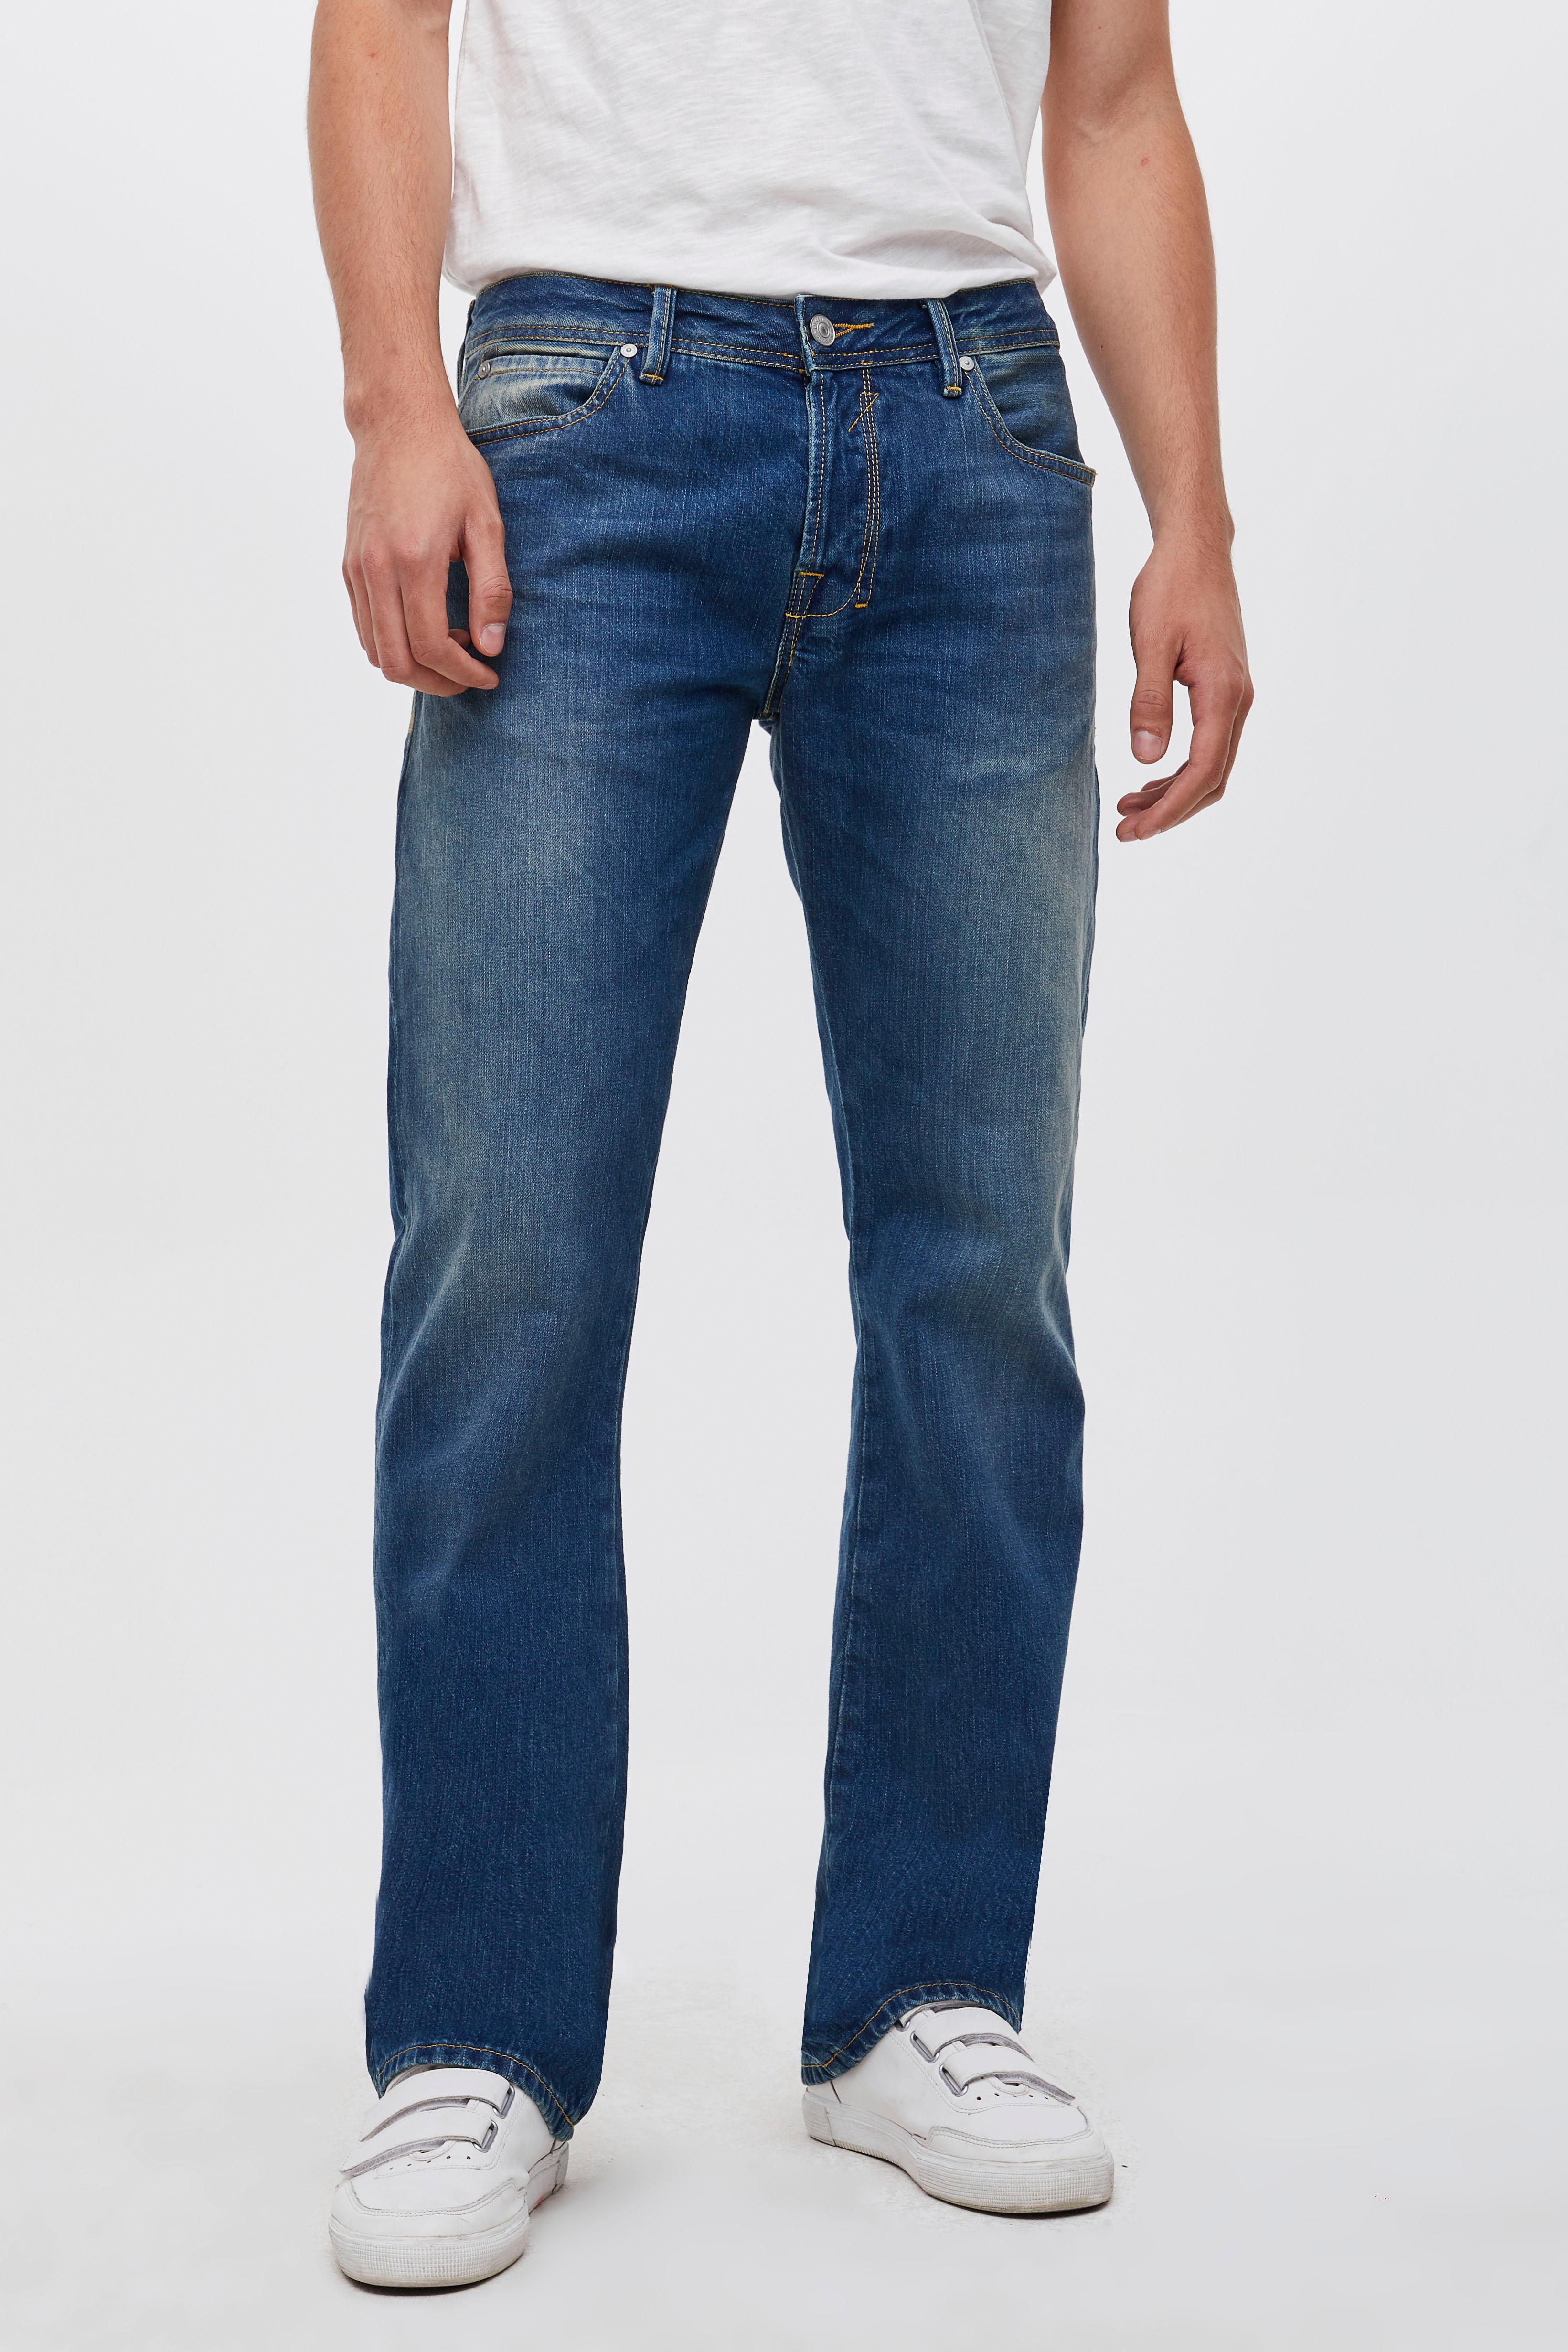 LTB Bootcut-Jeans RODEN | Bekleidung > Jeans > Bootcut Jeans | Ltb